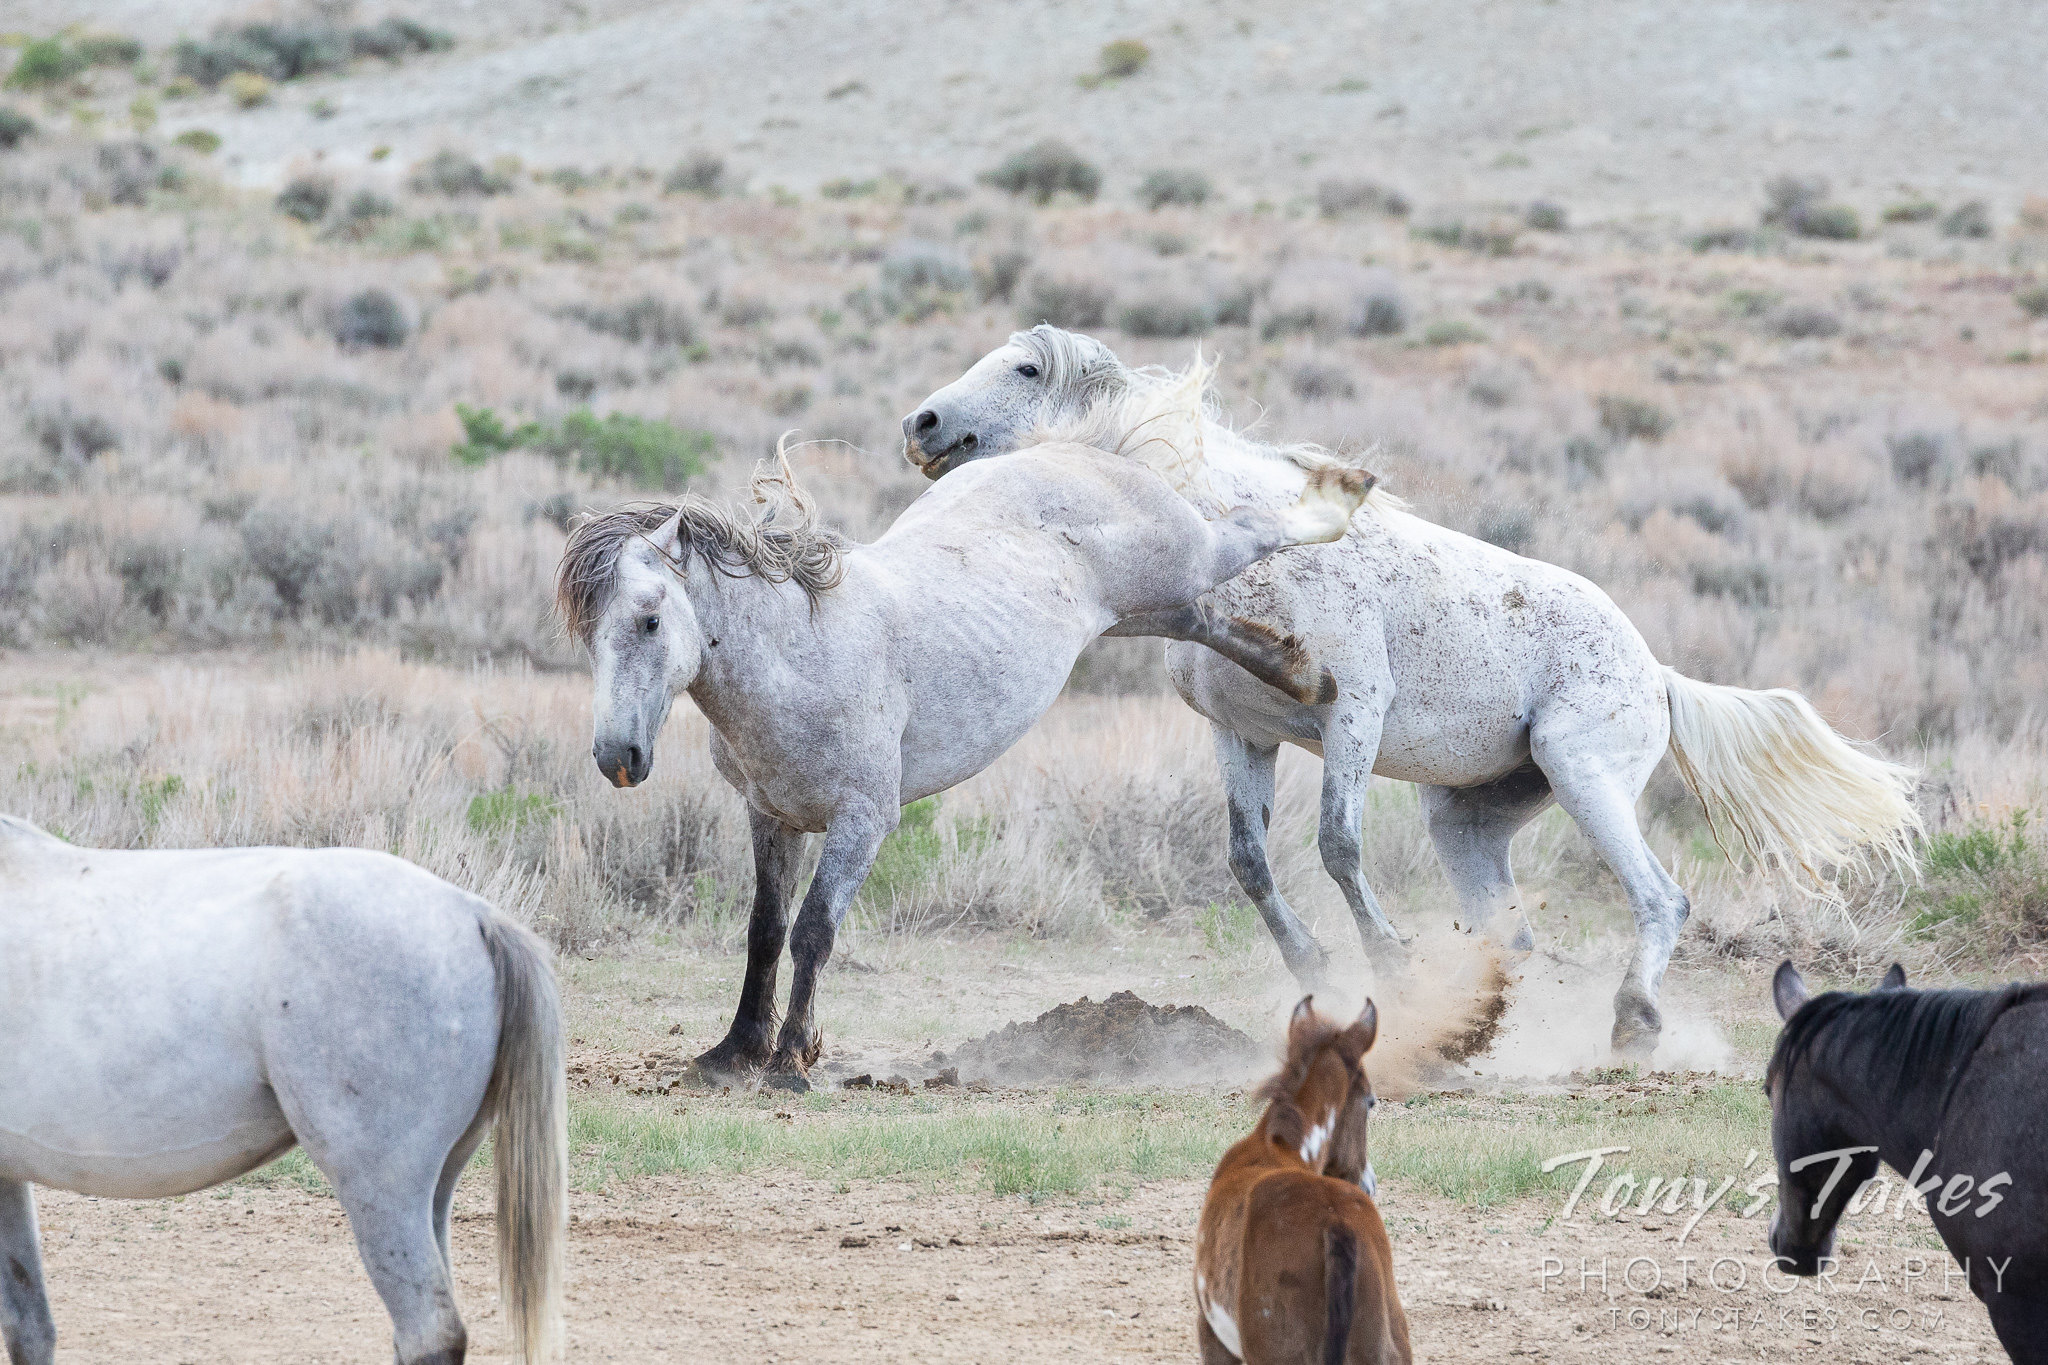 A stallion delivers a powerful blow to an opponent. (© Tony's Takes)